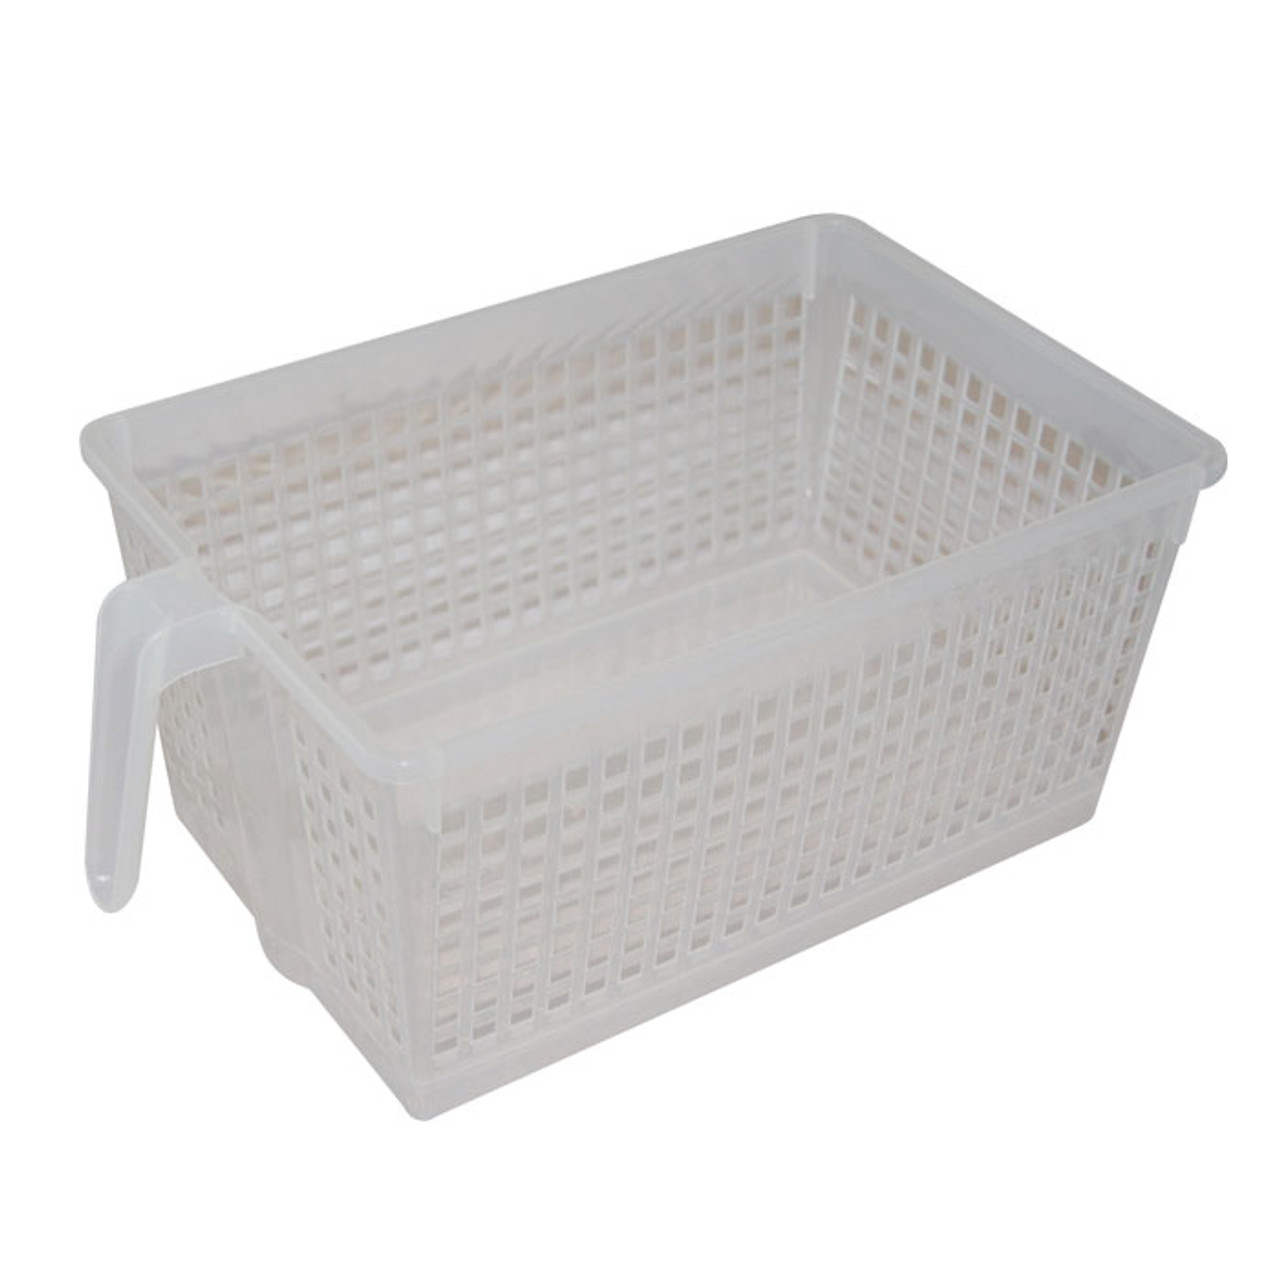 11fc6c3a33239 Handled Storage Basket, L Clear - Solutions - Your Organized Living ...